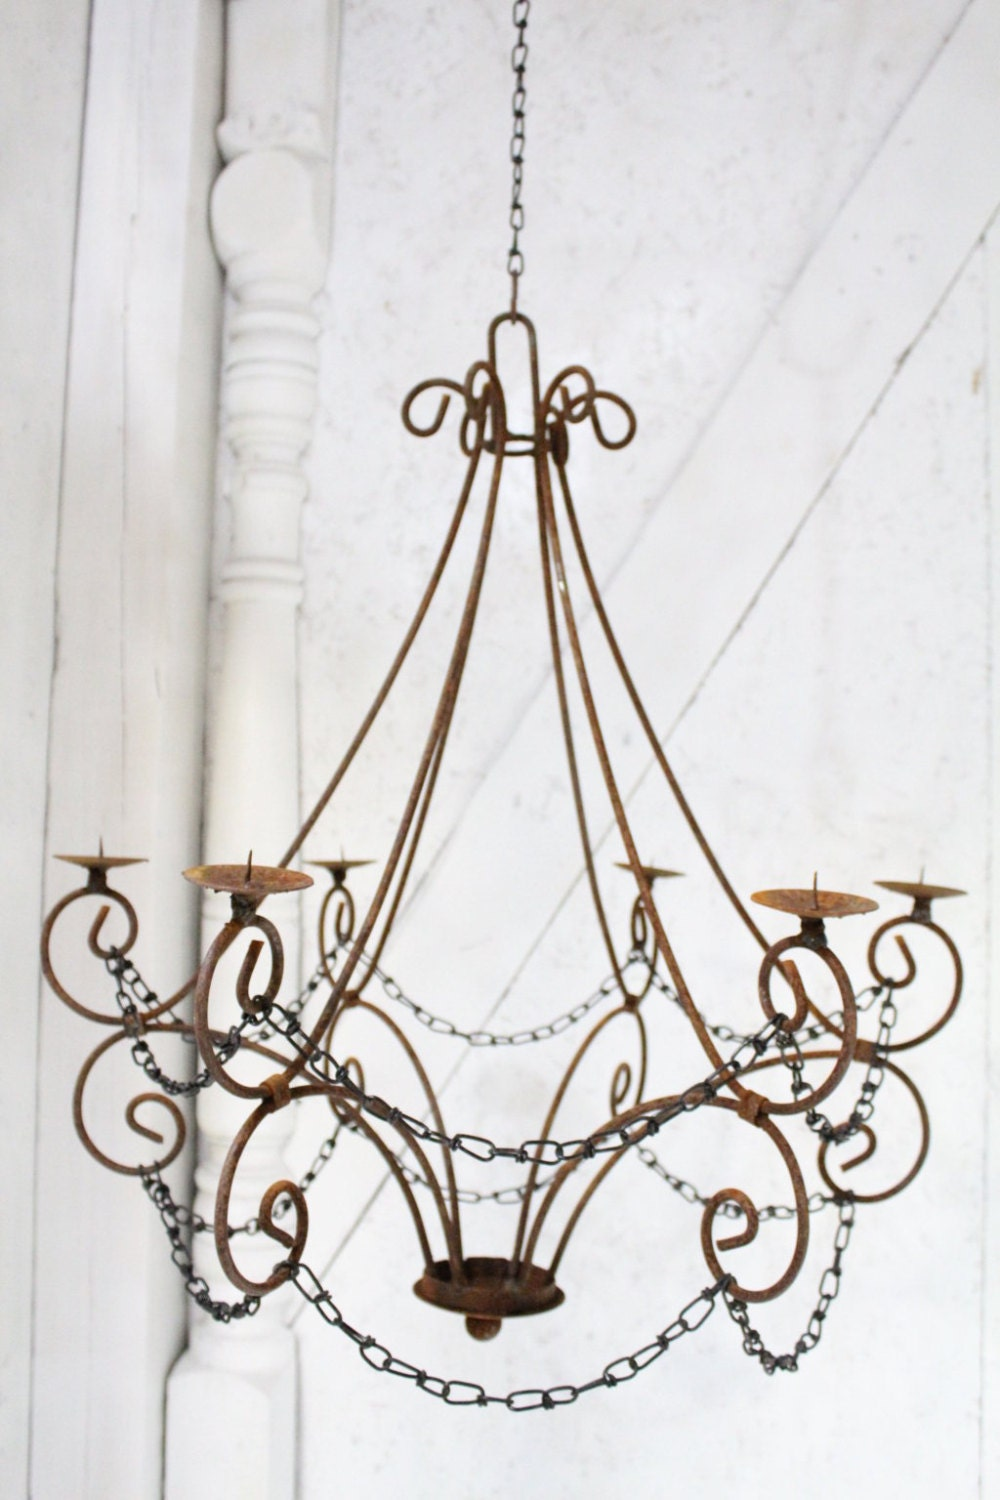 Wrought iron candle chandelier lighting master double